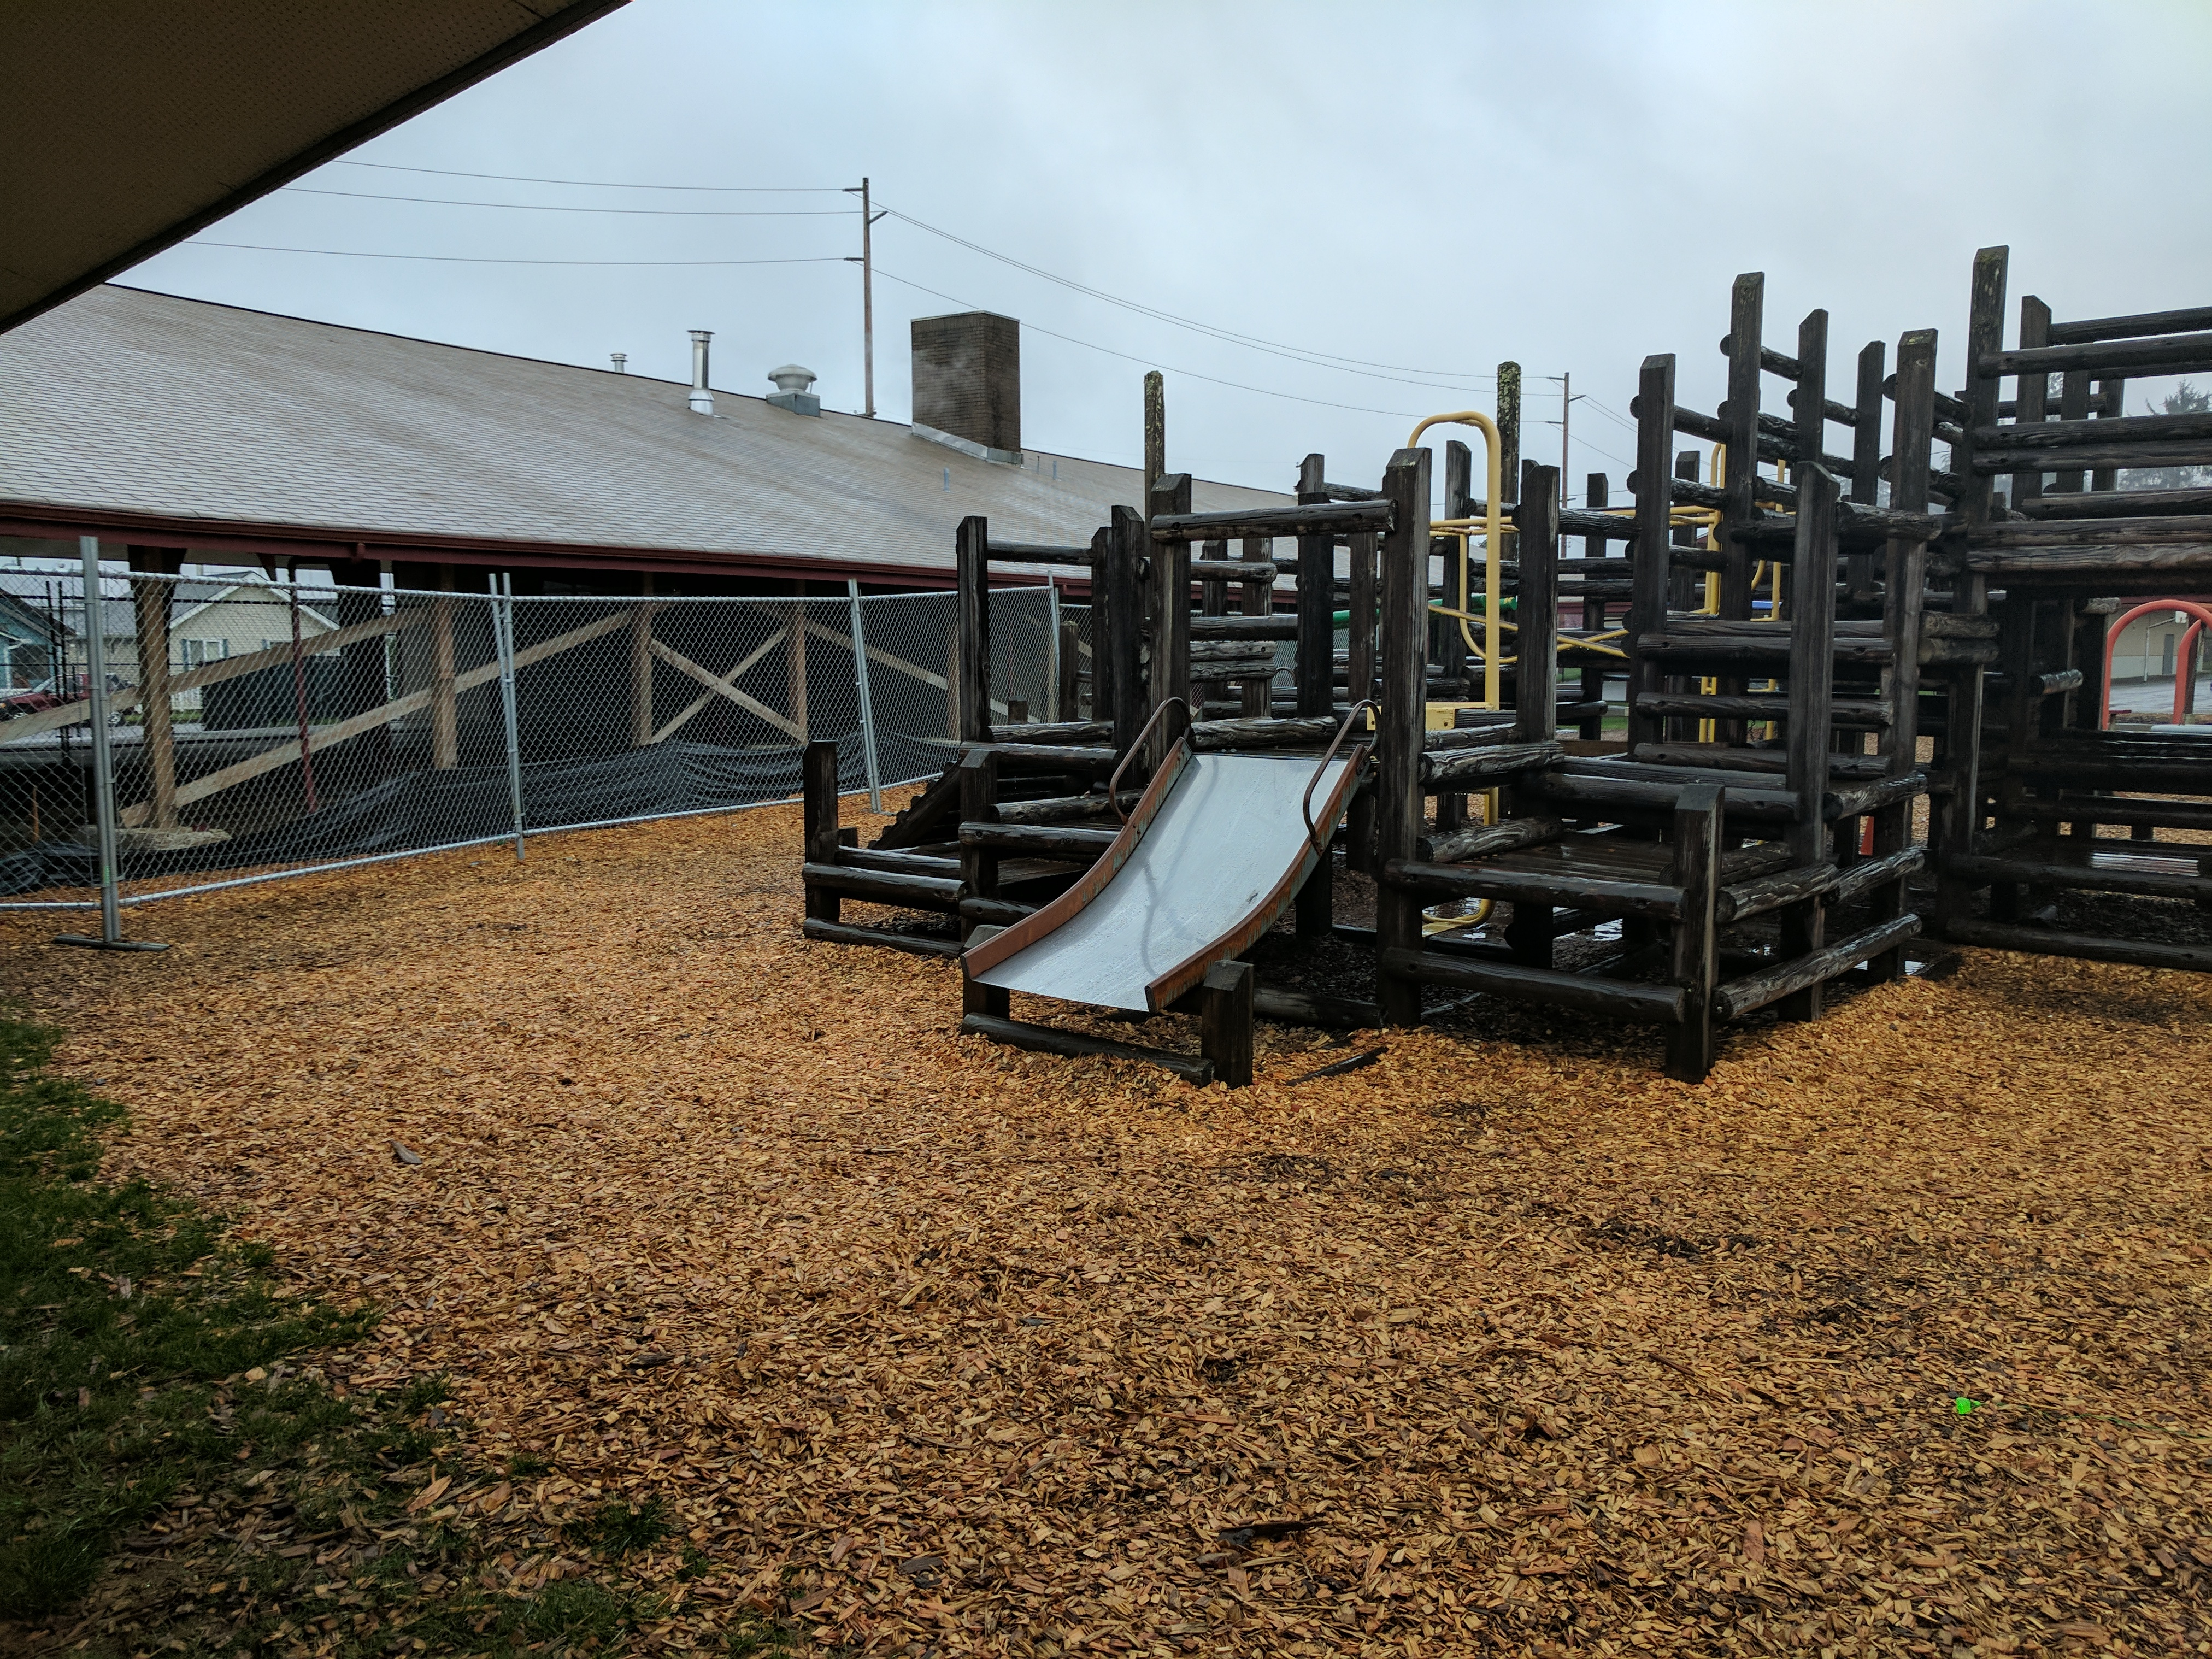 cosmopolis elementary school seeks support to replace playground